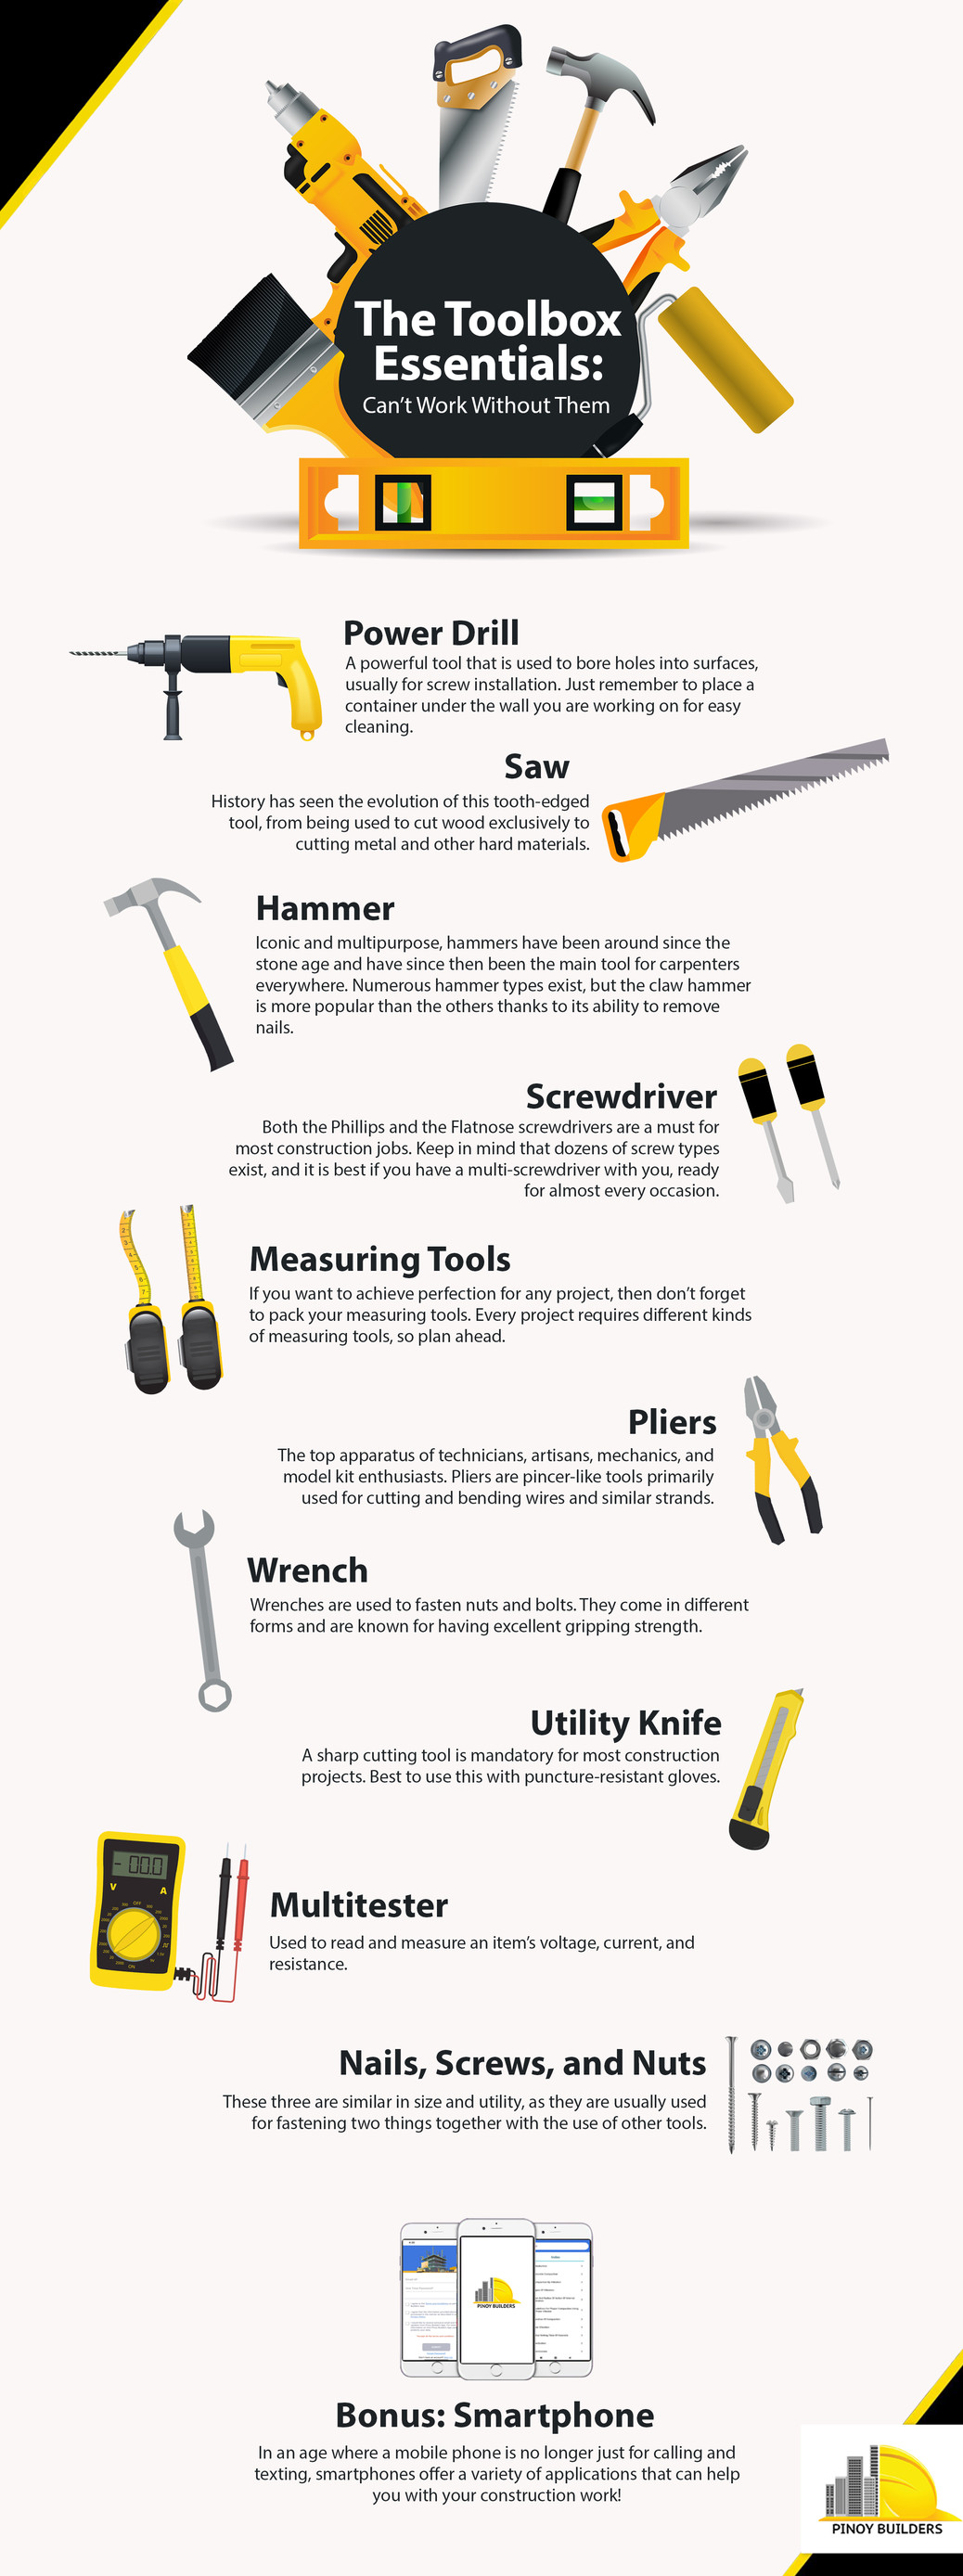 PB The Toolbox Essentials_9-6.jpg